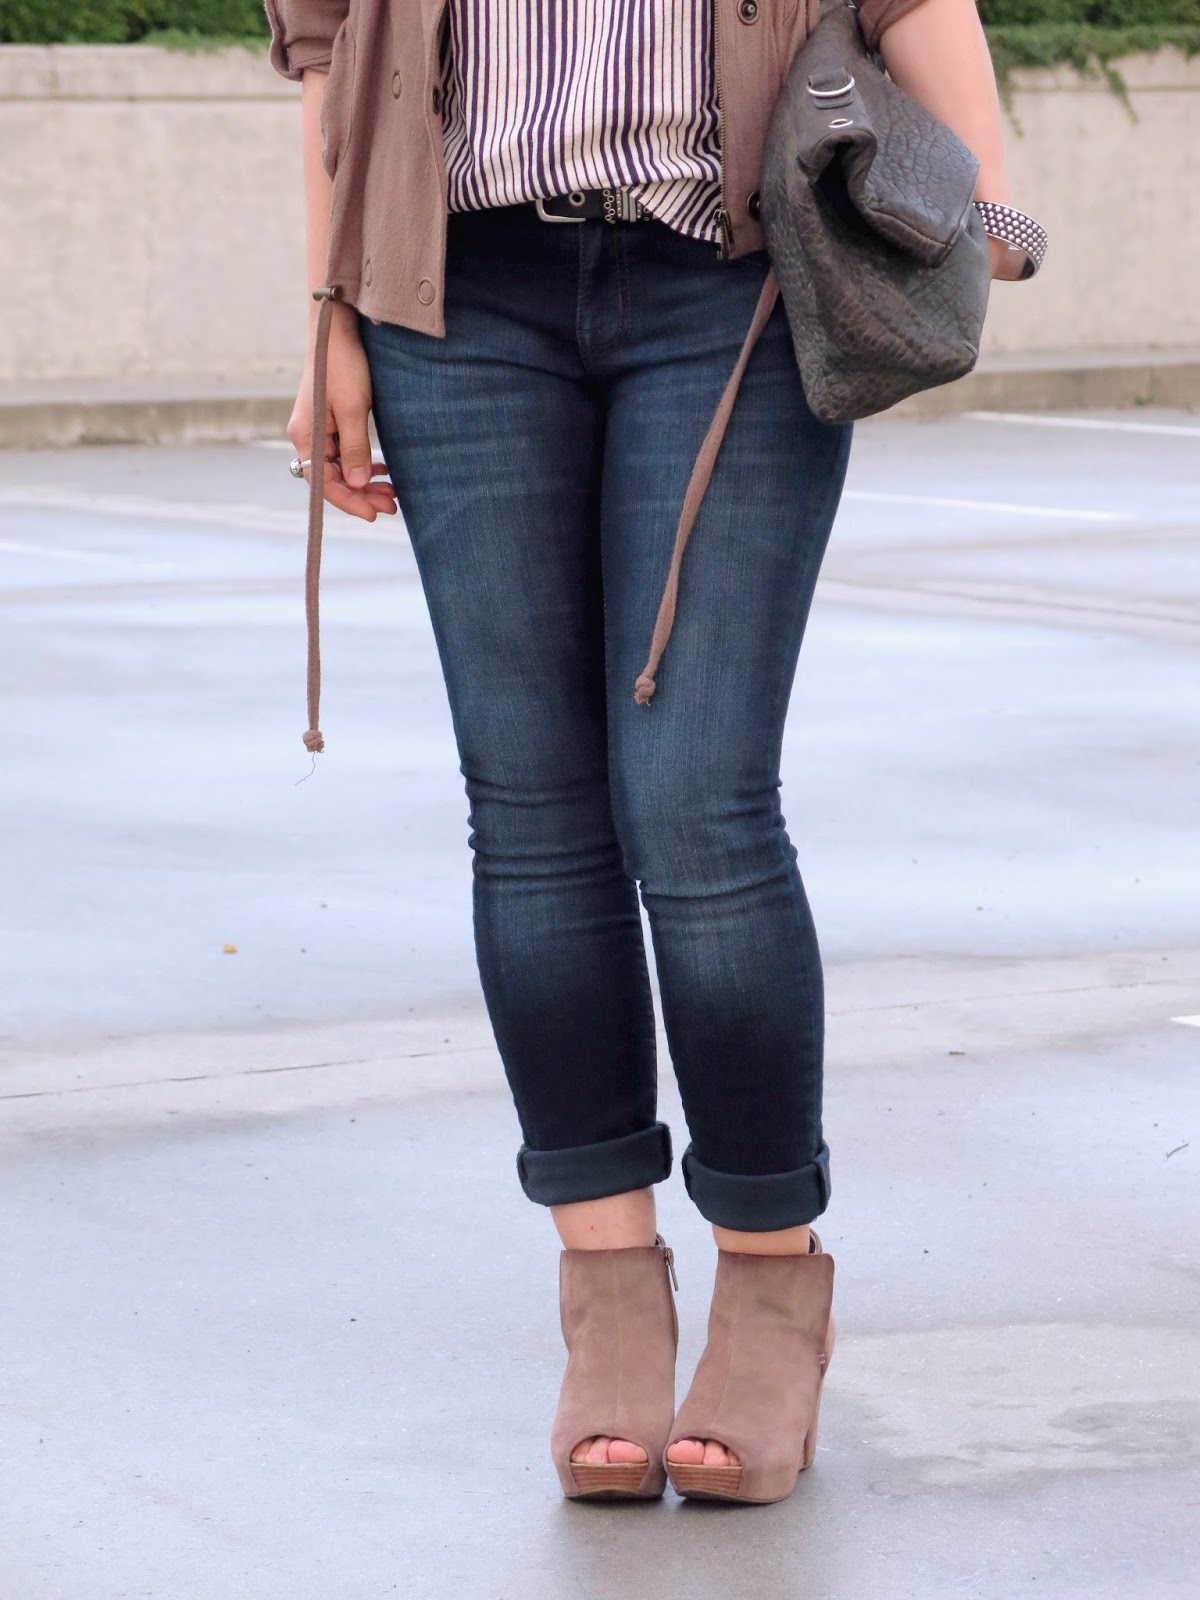 striped tank, khaki bomber jacket, and accessories